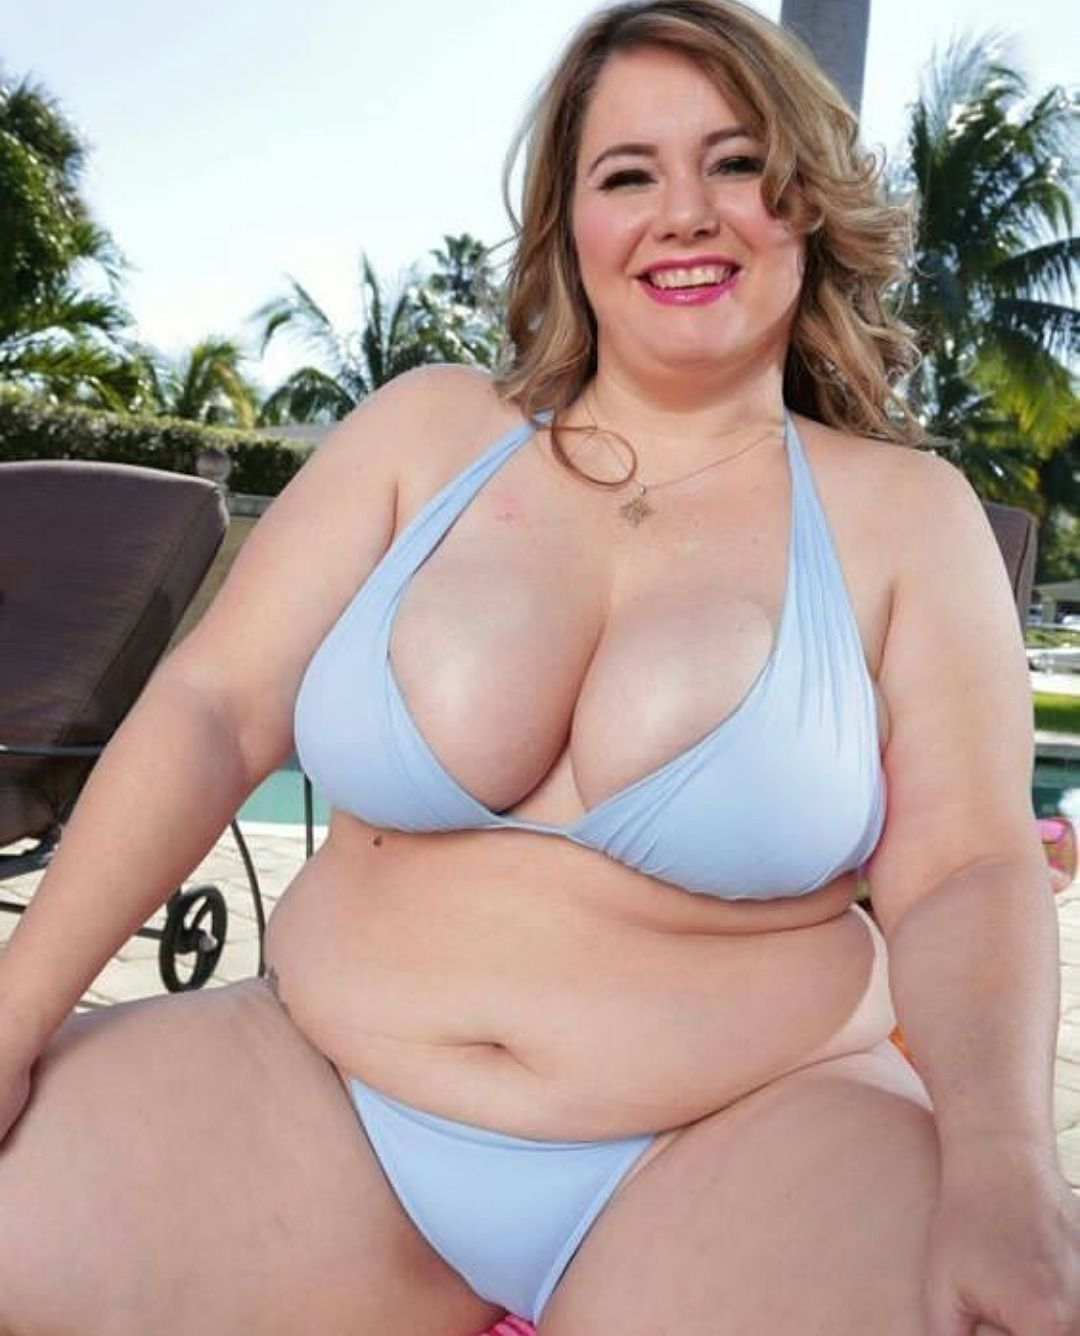 big beautiful women website